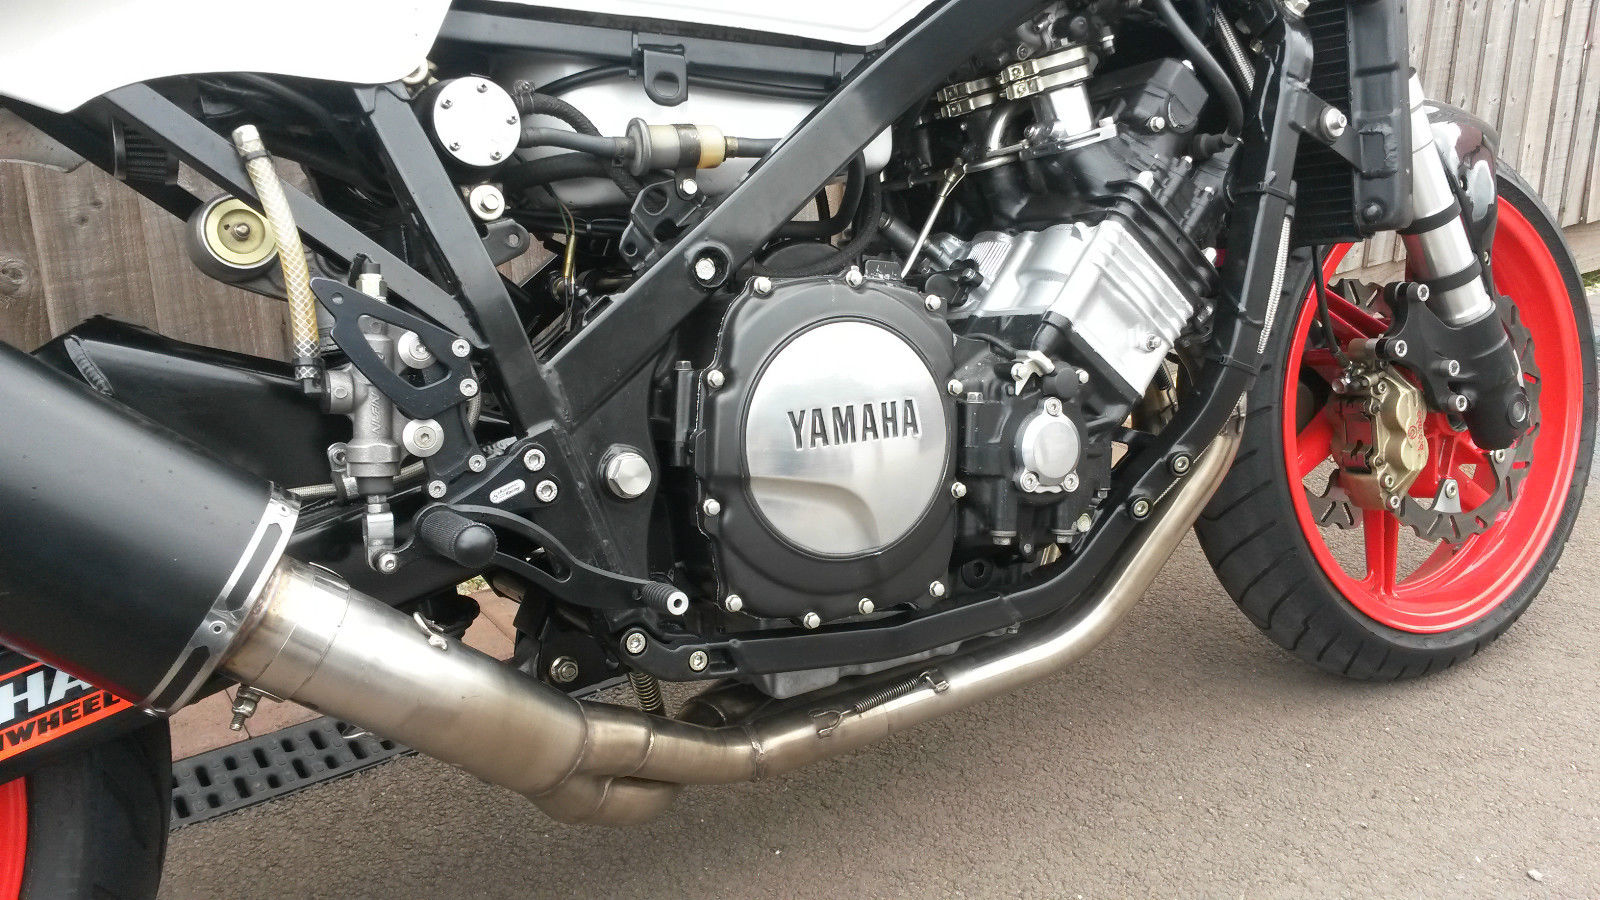 Yamaha Fz 750 2mg - Rocketgarage